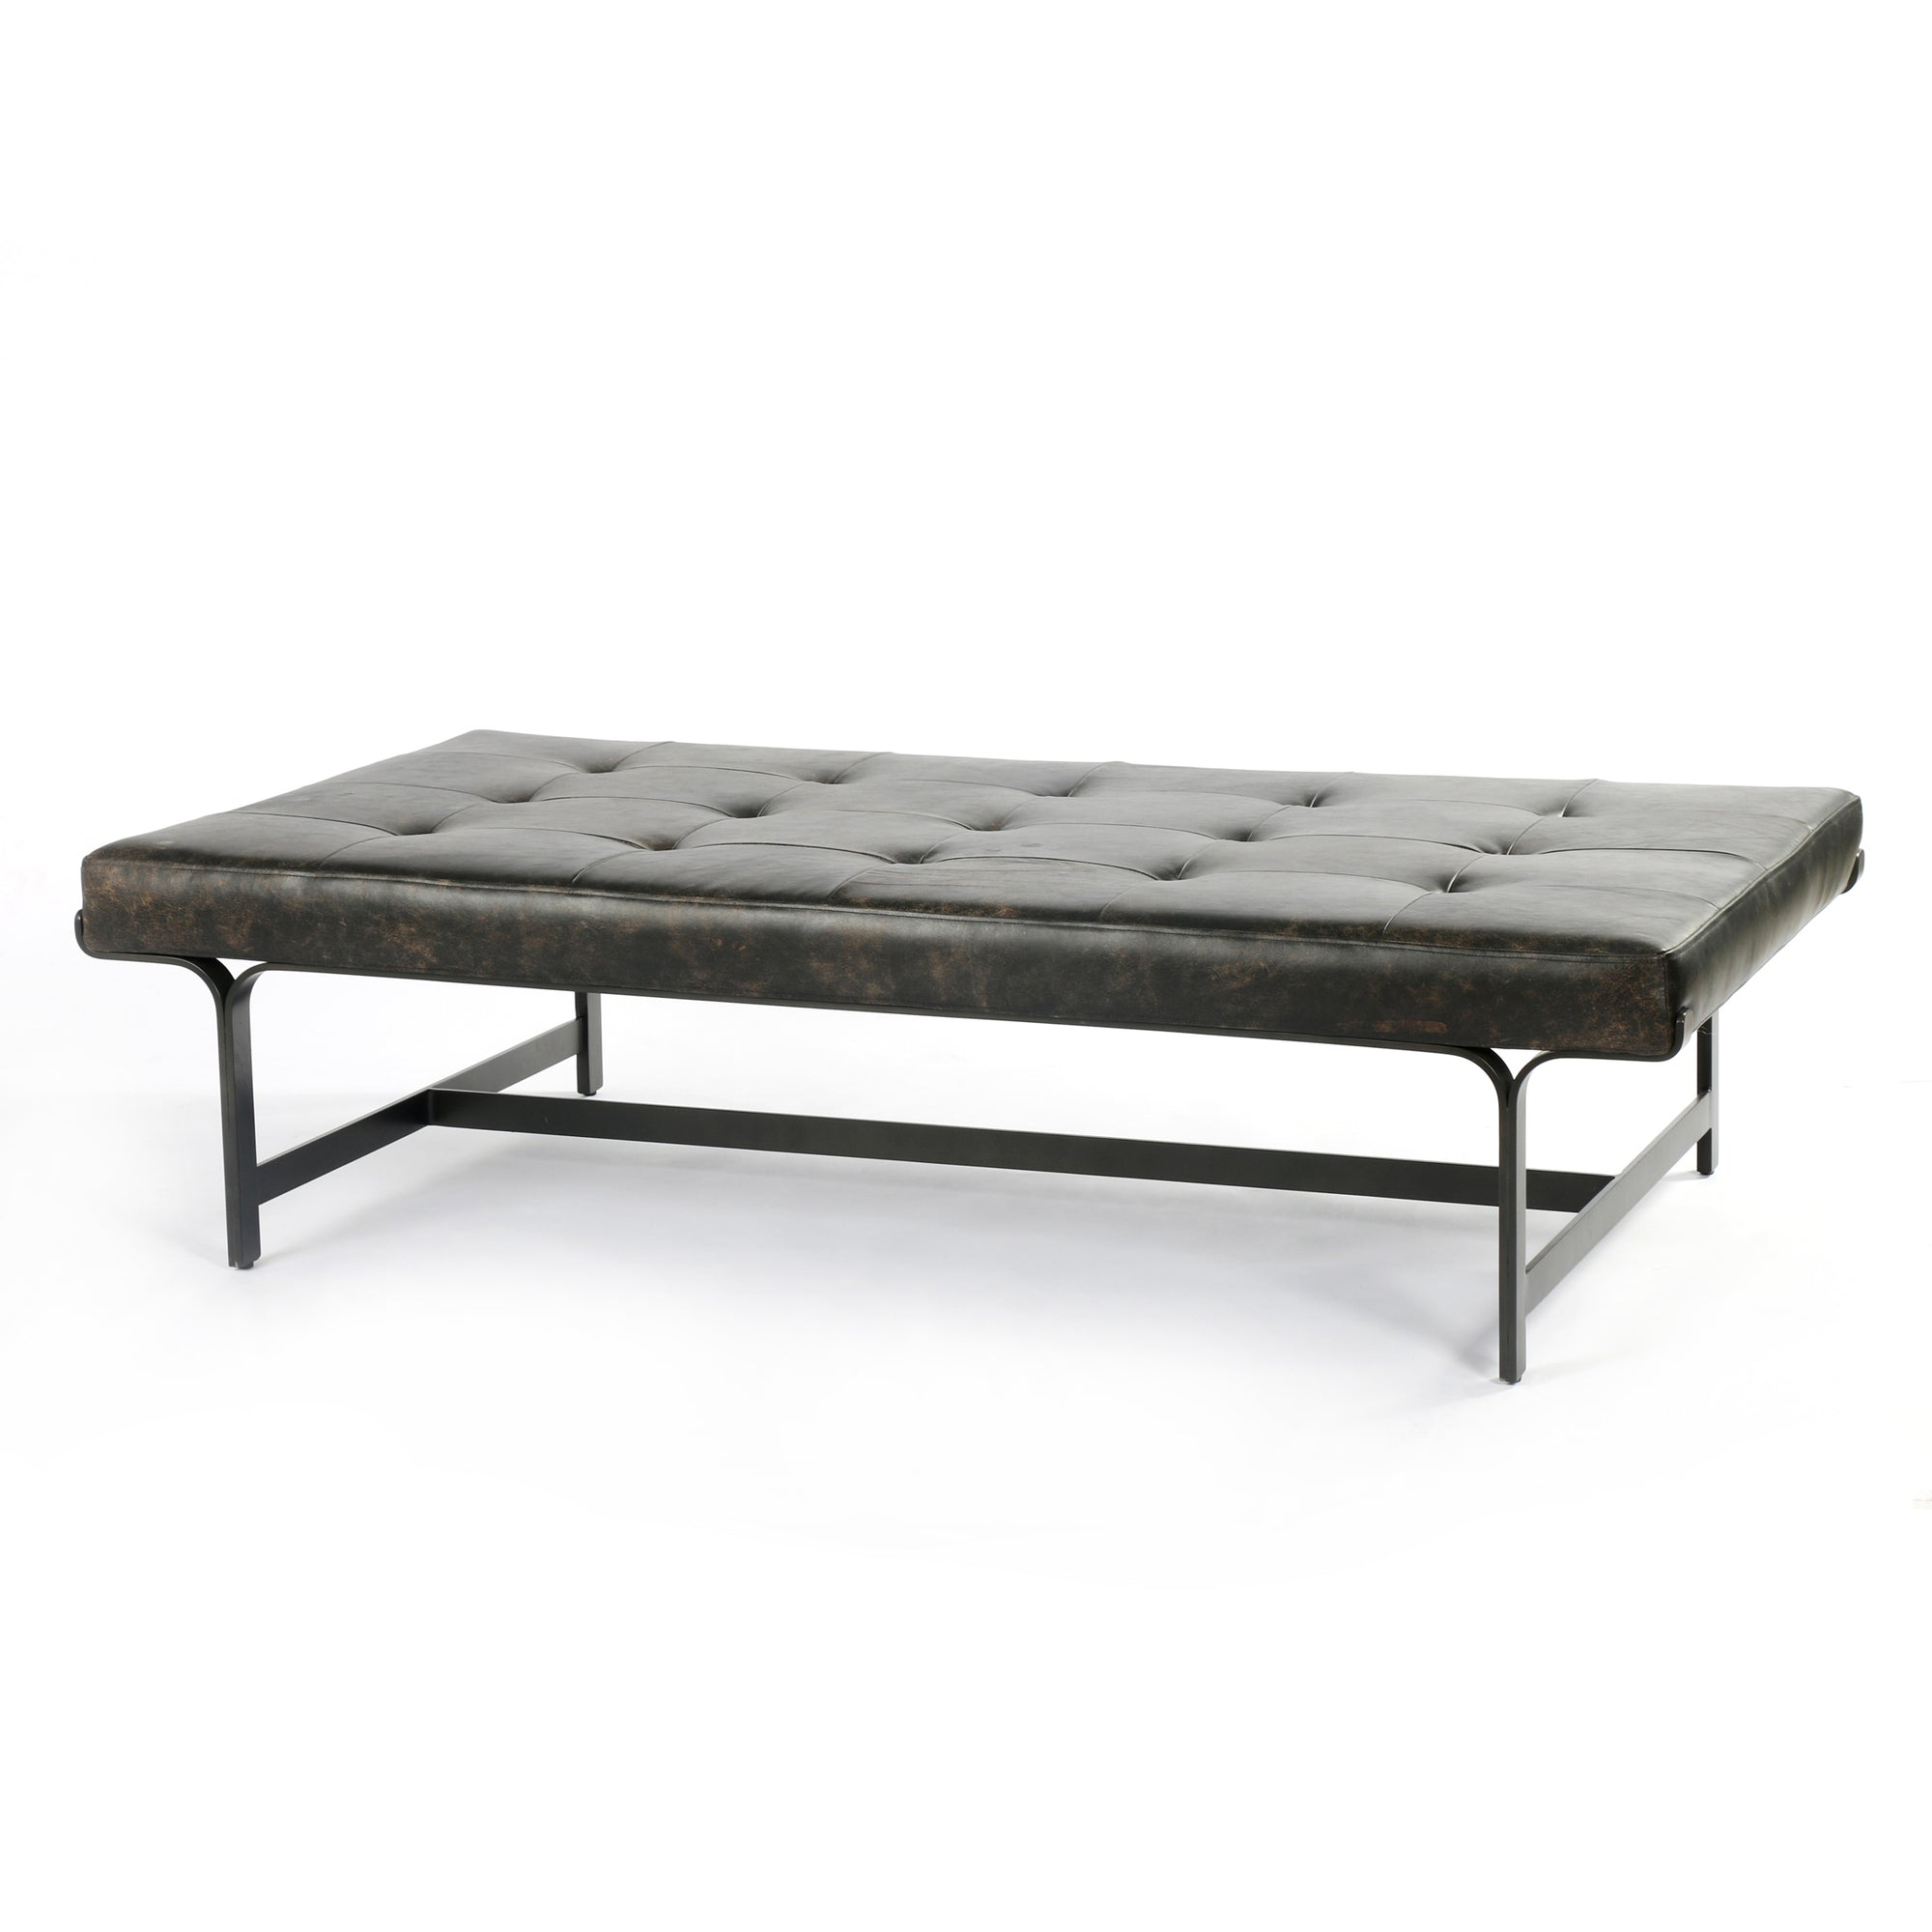 Lindy Coffee Table - Rialto Ebony